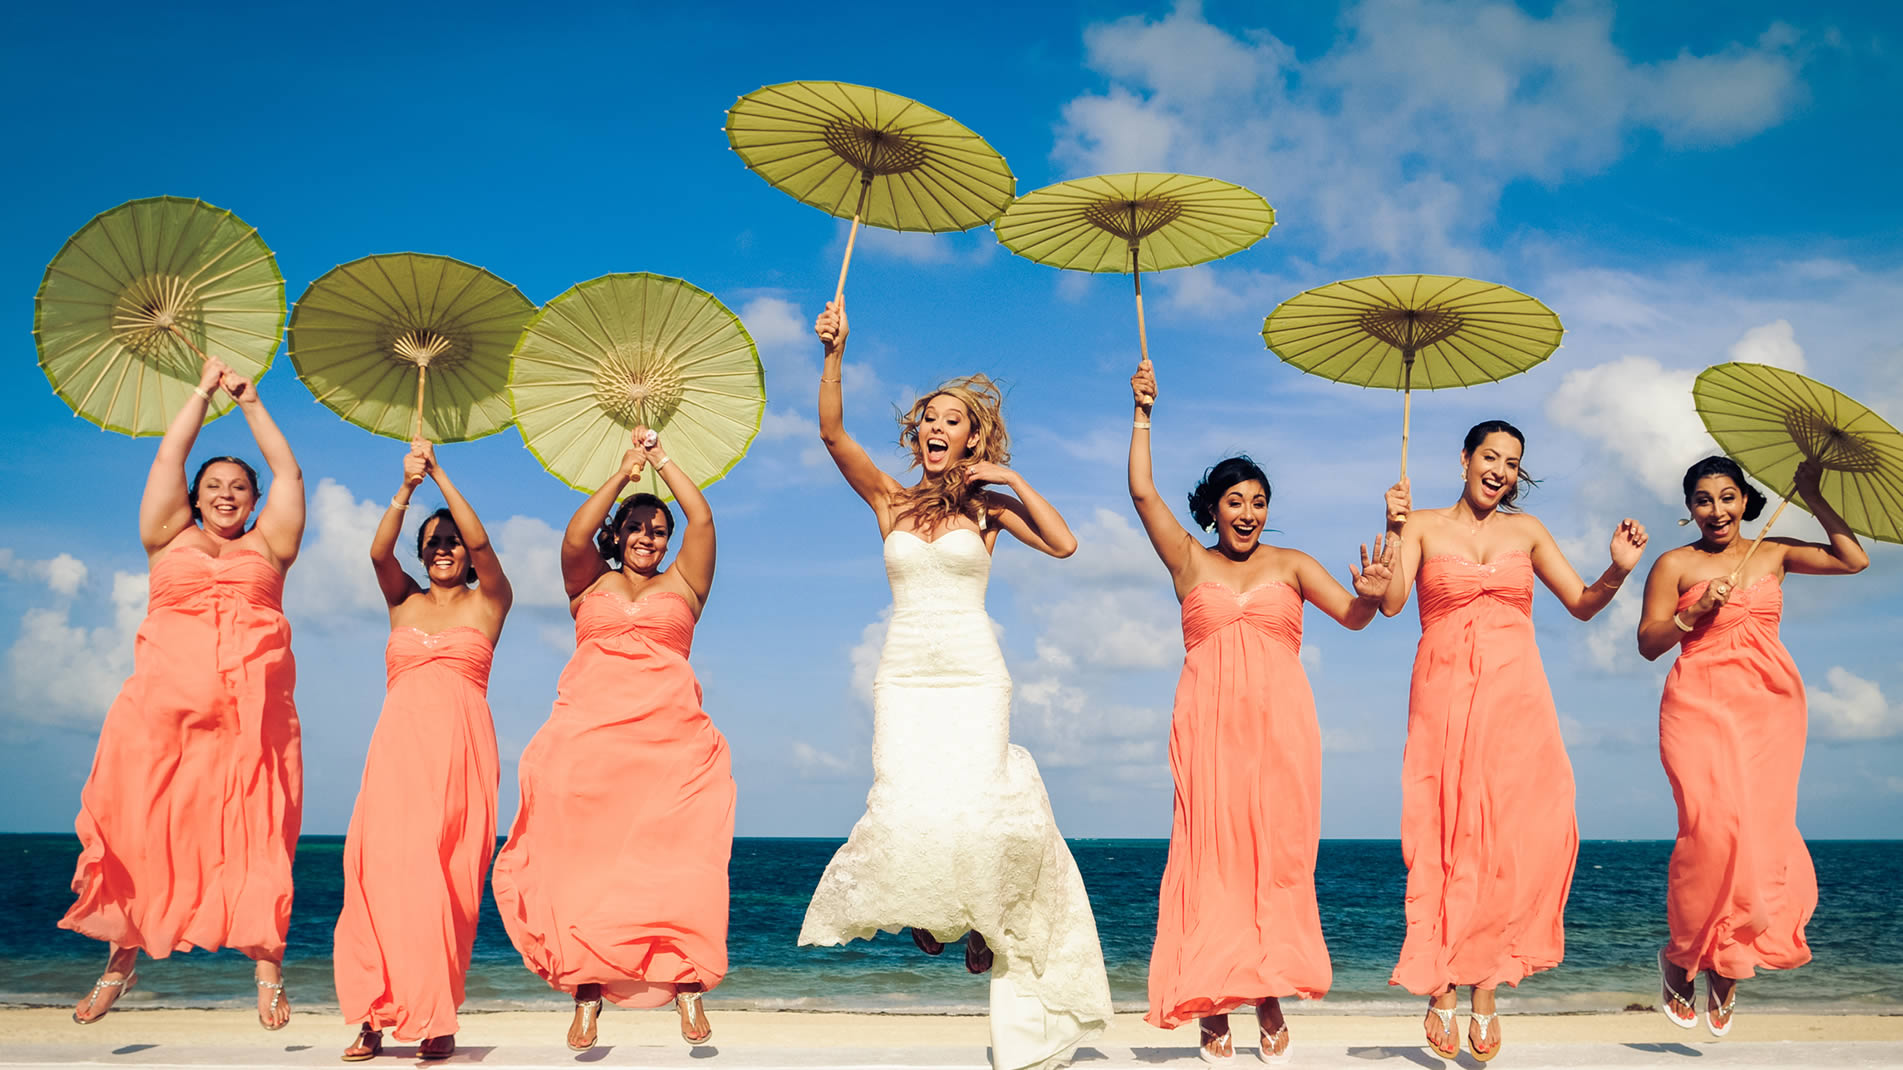 Wedding group incentives when booking a group with Palace Resorts - Receive up to $14,000 in complimentary benefits.